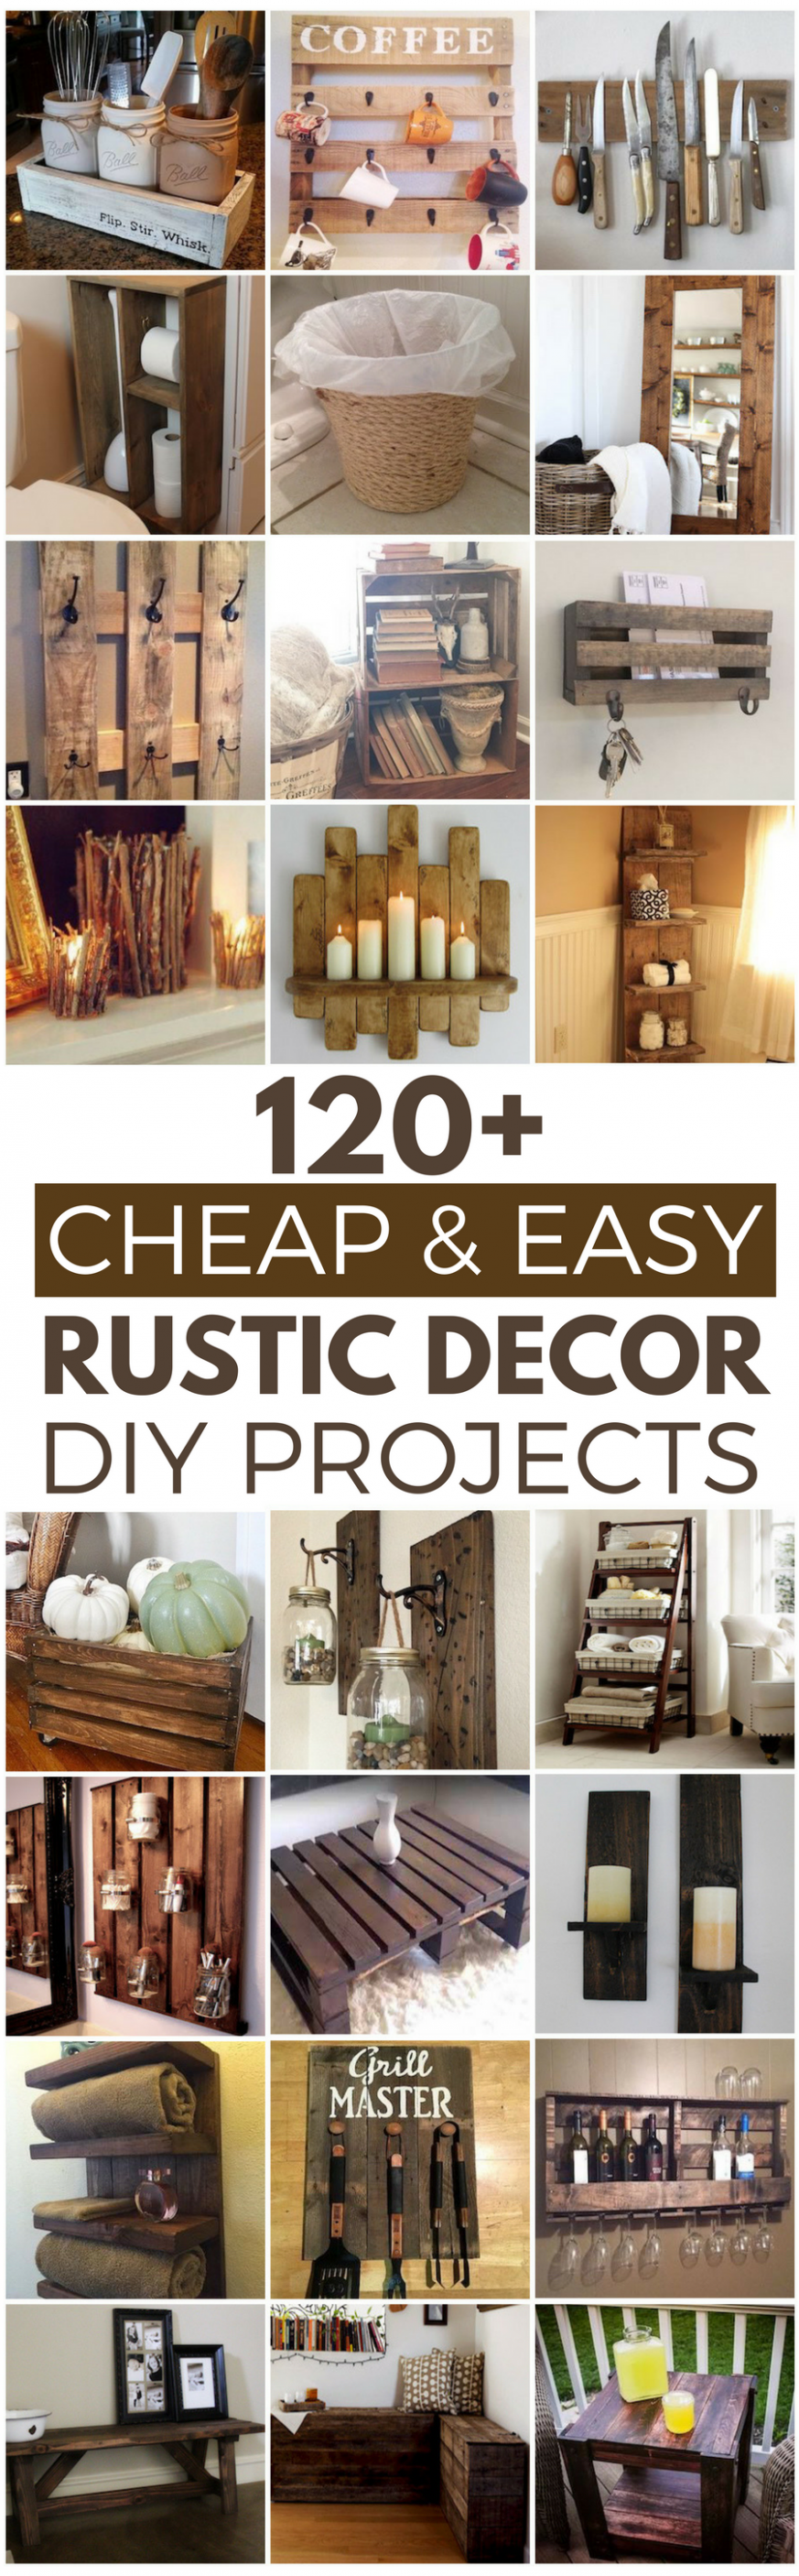 10 Cheap and Easy Rustic DIY Home Decor (With images) | Diy decor ..